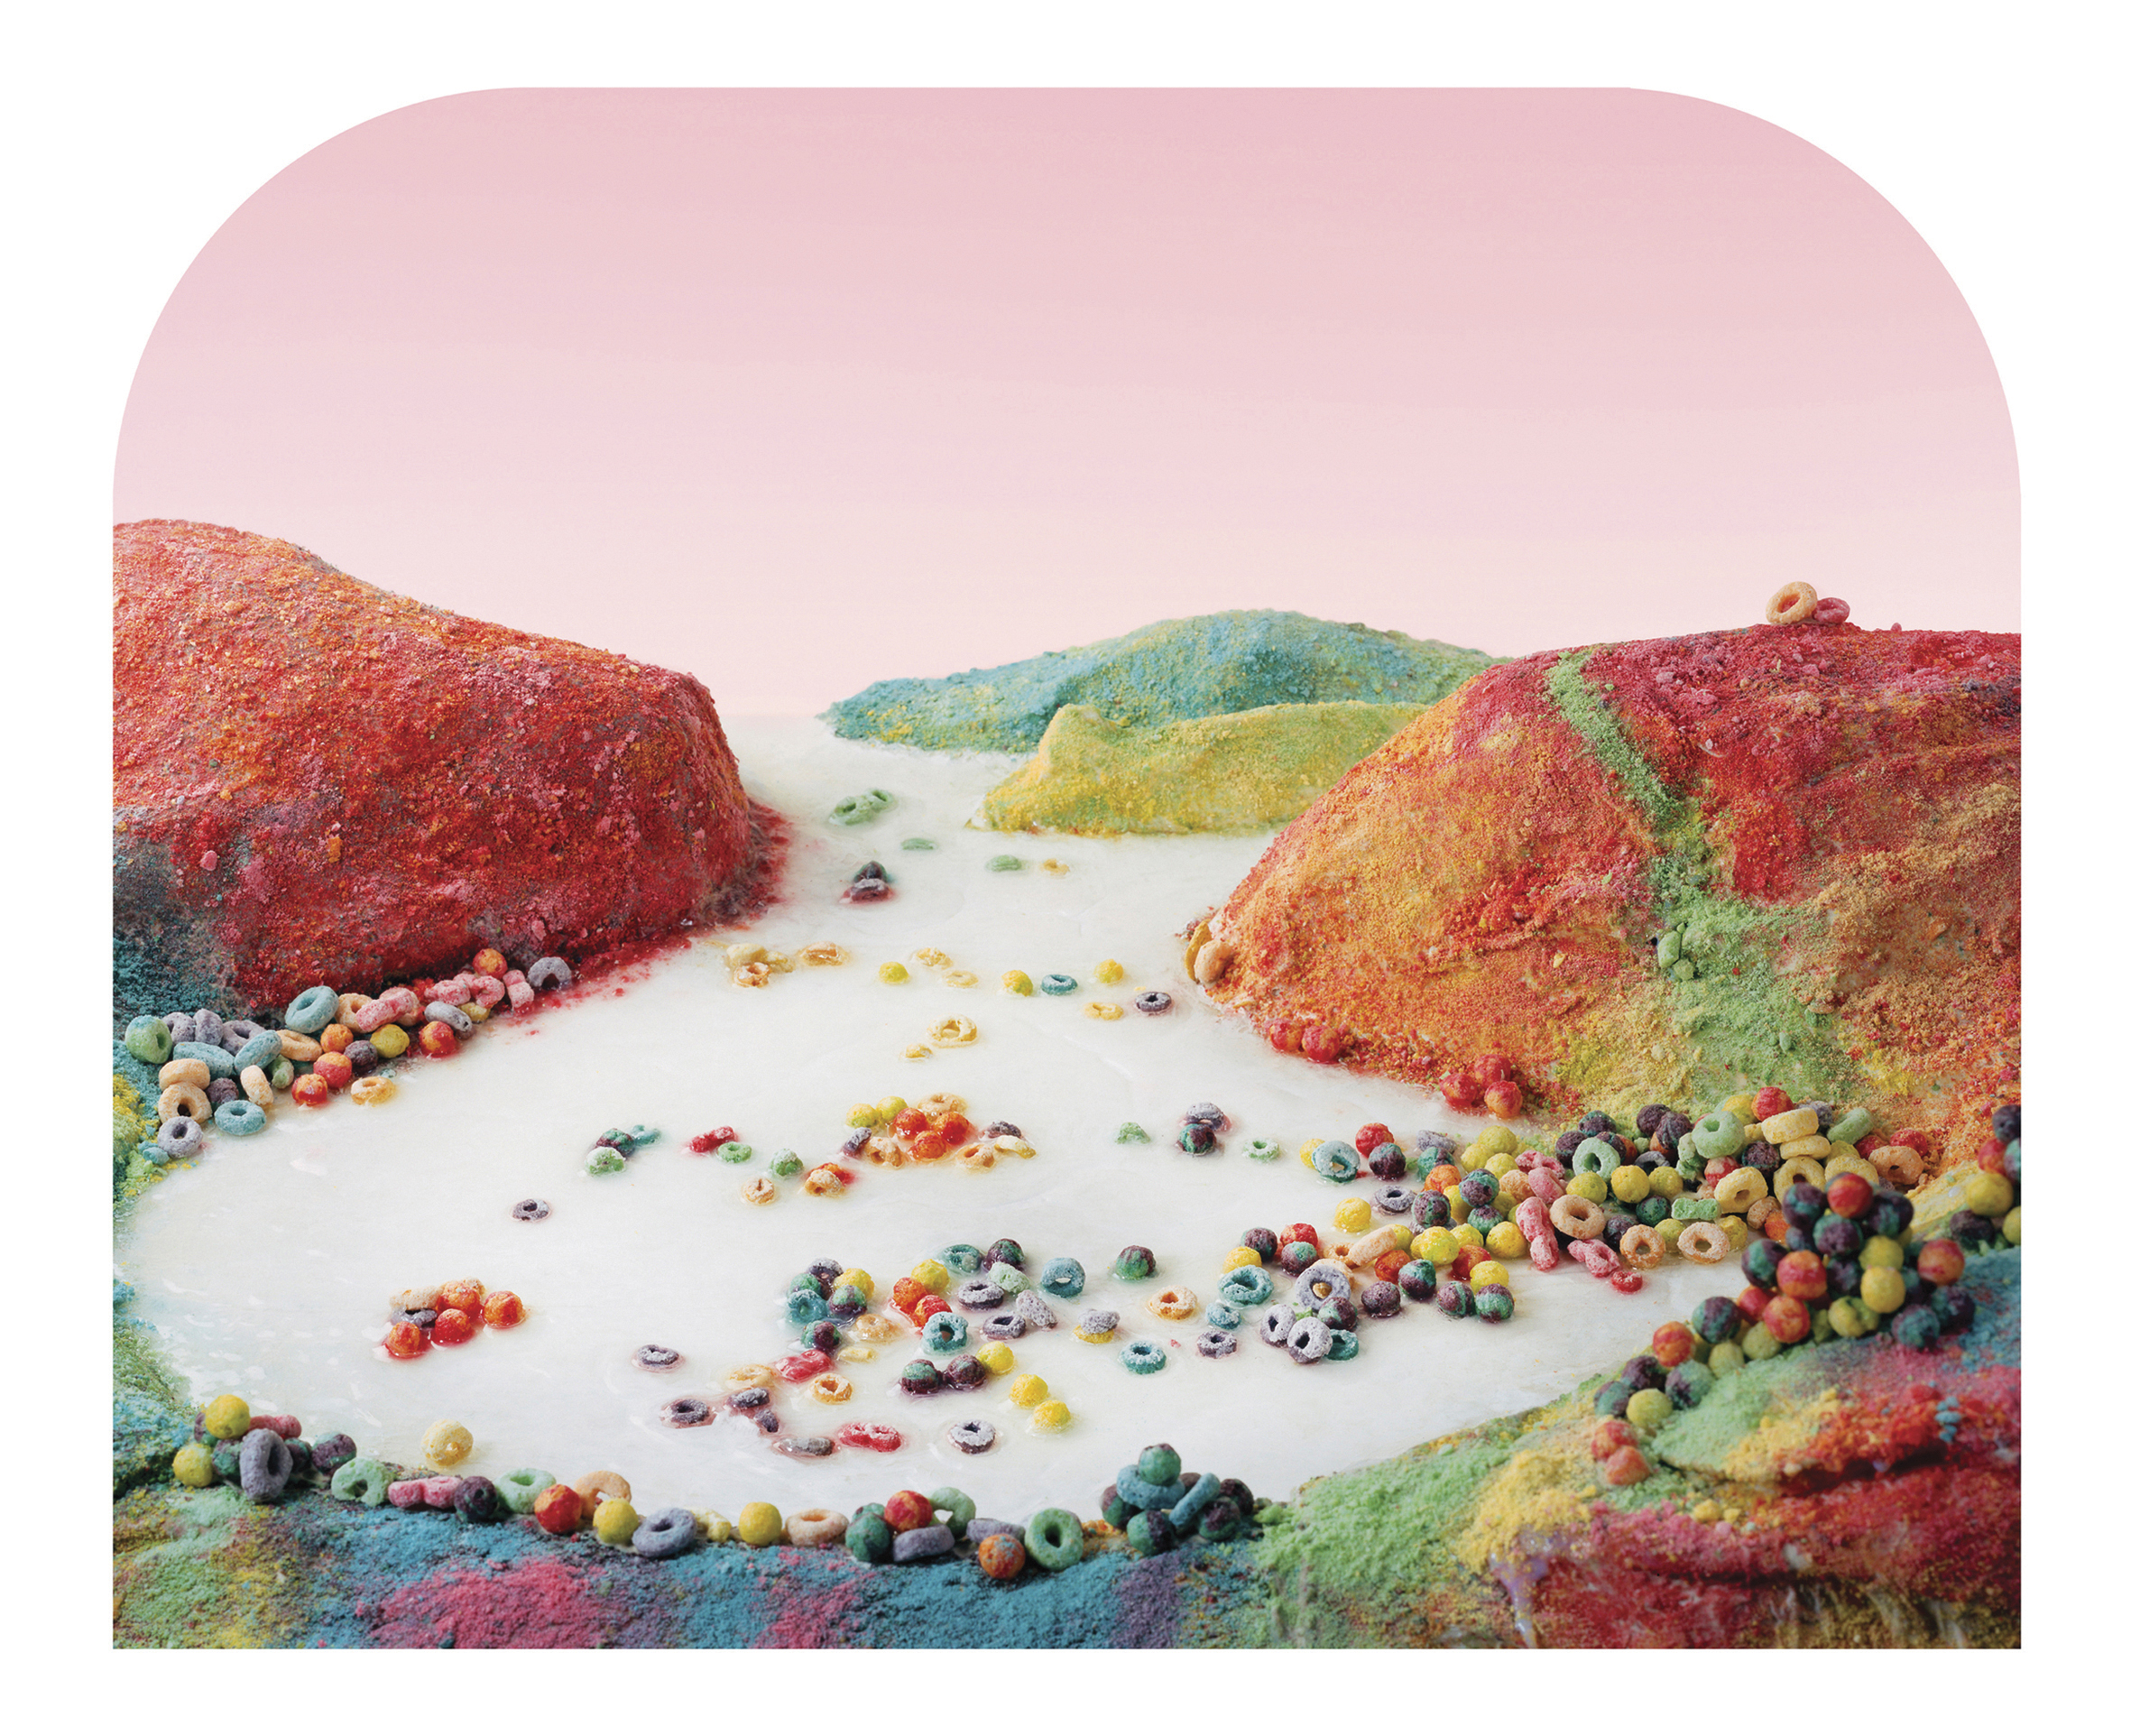 Fruit Loops Landscape, from the series Processed Views: Surveying the Industrial Landscape, 2012-2014 by Barbara Ciurej & Lindsay Lochman